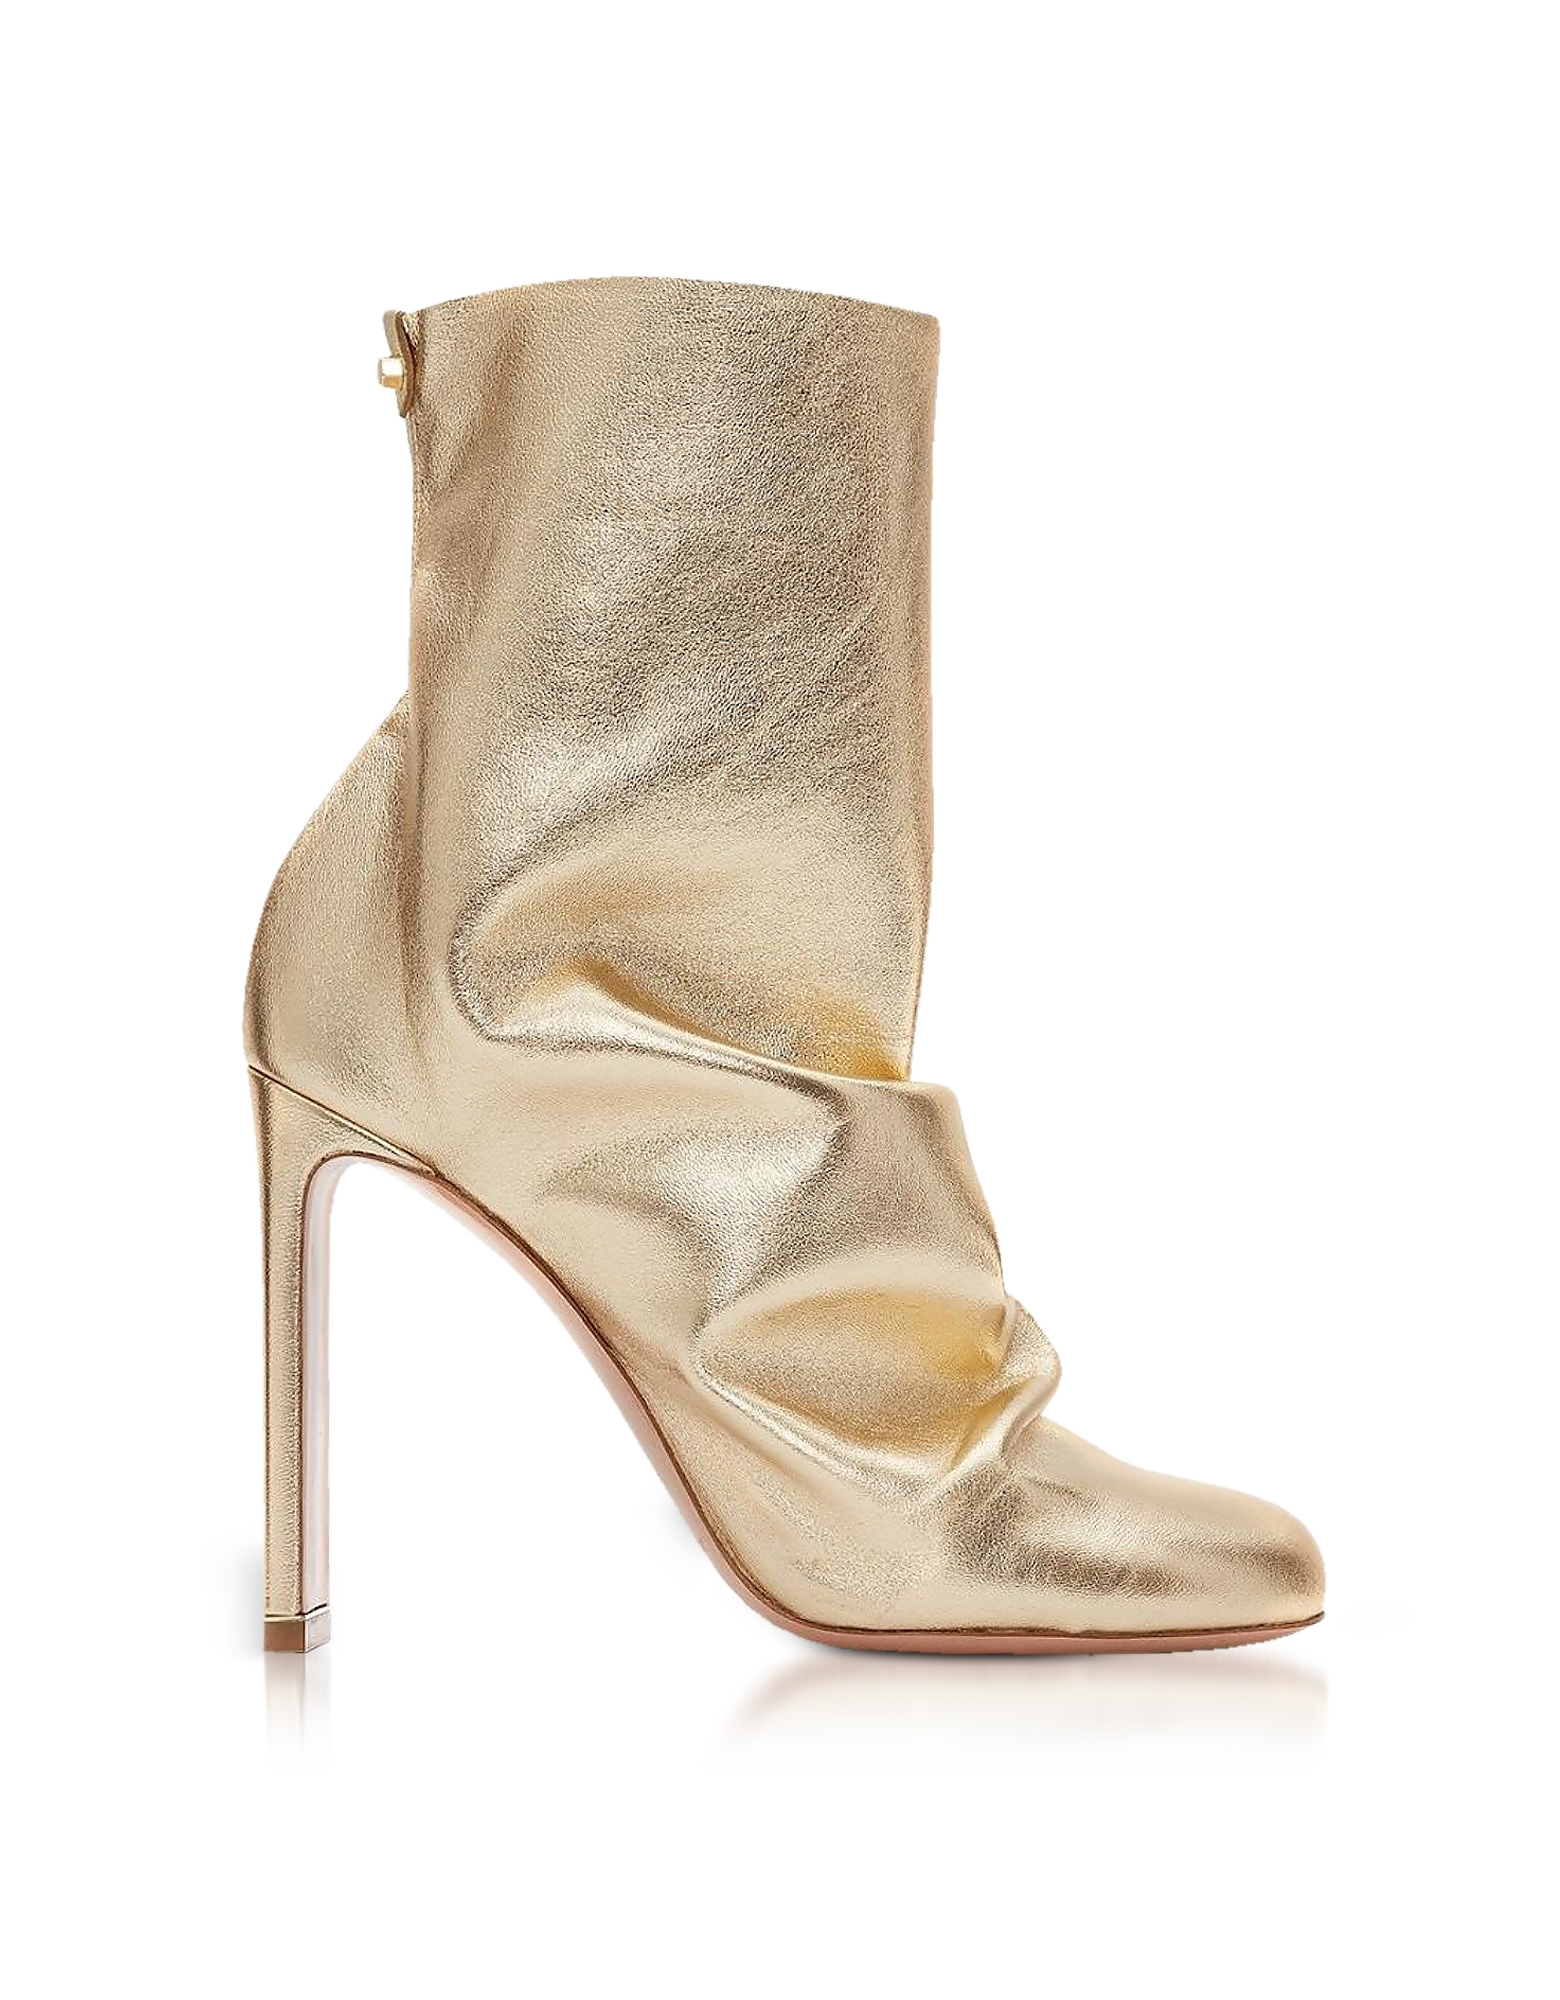 Nicholas Kirkwood Designer Shoes, Light Gold Metallic Nappa 105mm D